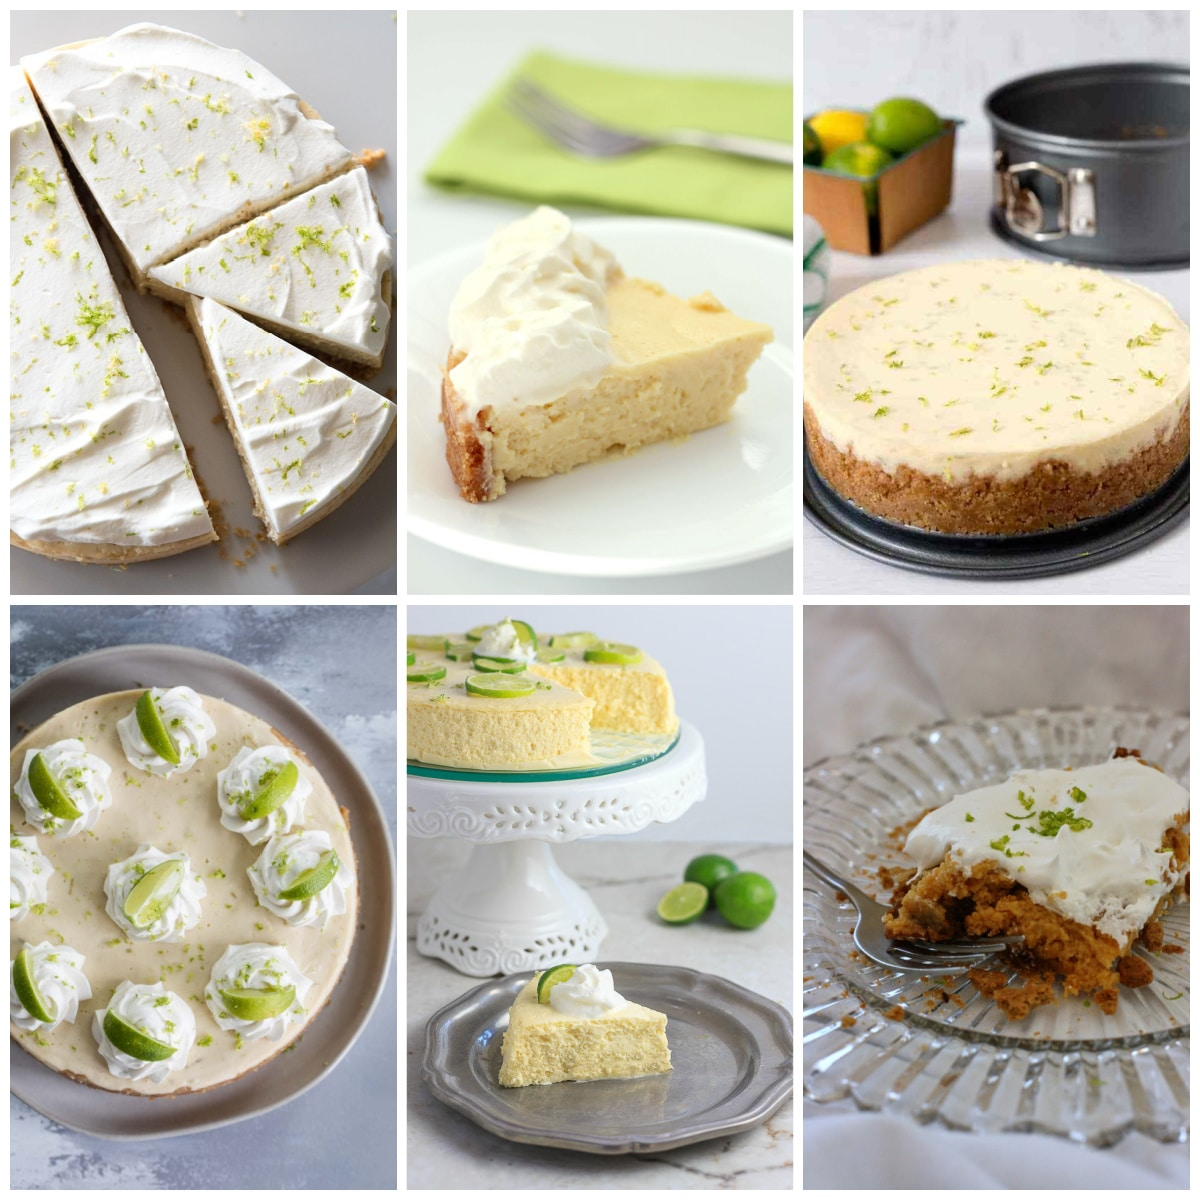 Instant Pot and Slow Cooker Key Lime Pie Desserts photo collage